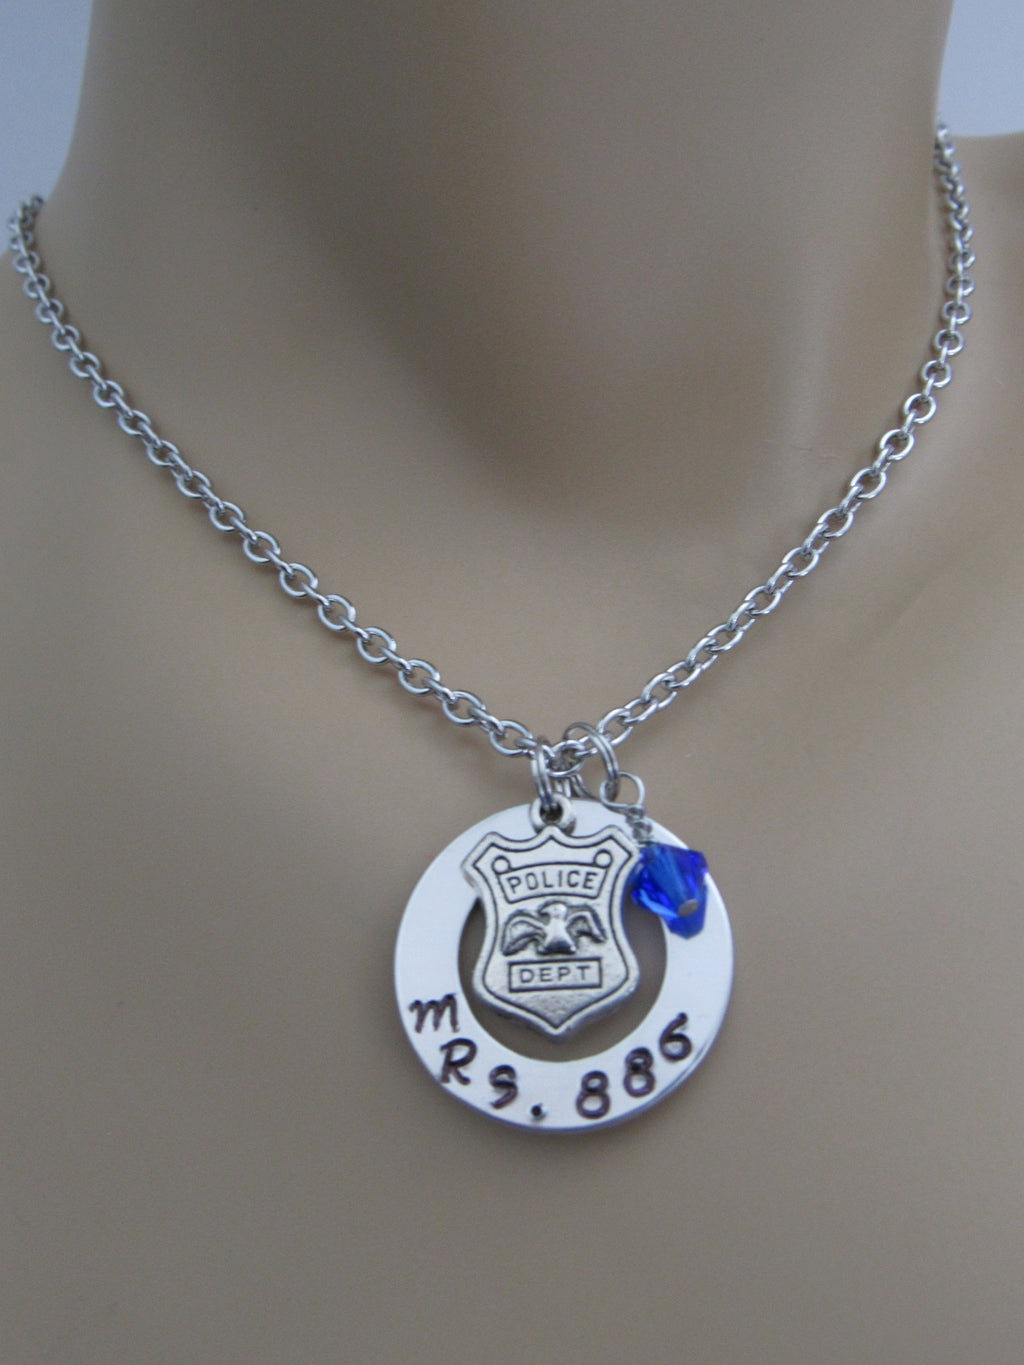 Mrs. Policewoman, Mrs. Police Wife Stamped Necklace w/ Custom Badge Number & Blue Swarovski Bead